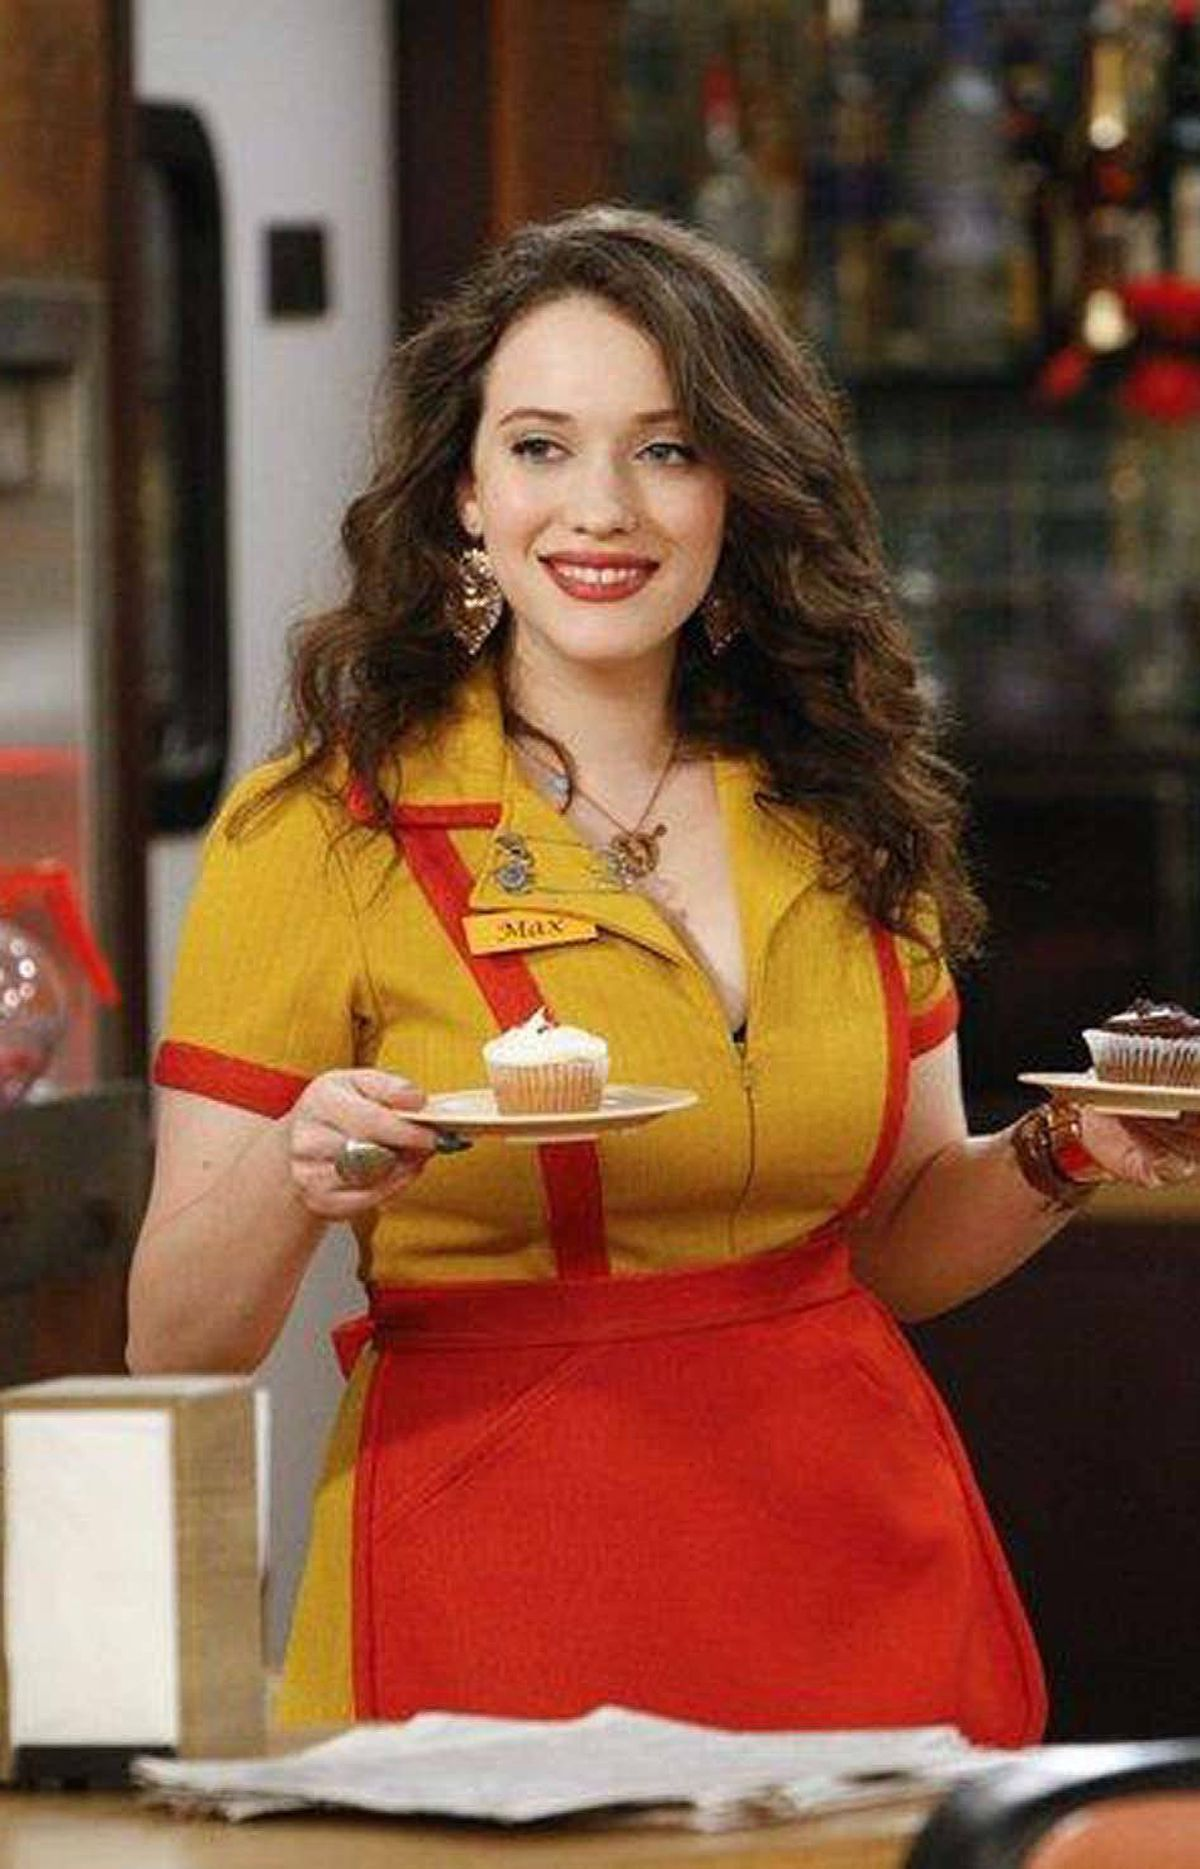 COMEDY 2 Broke Girls CBS, CITY-TV, 8 p.m. ET/PT The spirit of Laverne and Shirley lives on in this rookie sitcom, which wraps tonight. One of the few breakout hits of the past TV season, the show has held its audience all season and is already renewed for next season. Supersized to an hour for the occasion, the season finale finds the adorable best-friend waitresses Max (Kat Dennings) and Caroline (Beth Behrs) talking their way into a lavish fashion gala at the Metropolitan Museum of Art. The objective: Corner the design maven Martha Stewart, who plays herself, of course, in hopes of getting her approval of their cupcake business. Former Wings regular Steven Weber guest-stars as Caroline's ne'er-do-well father.